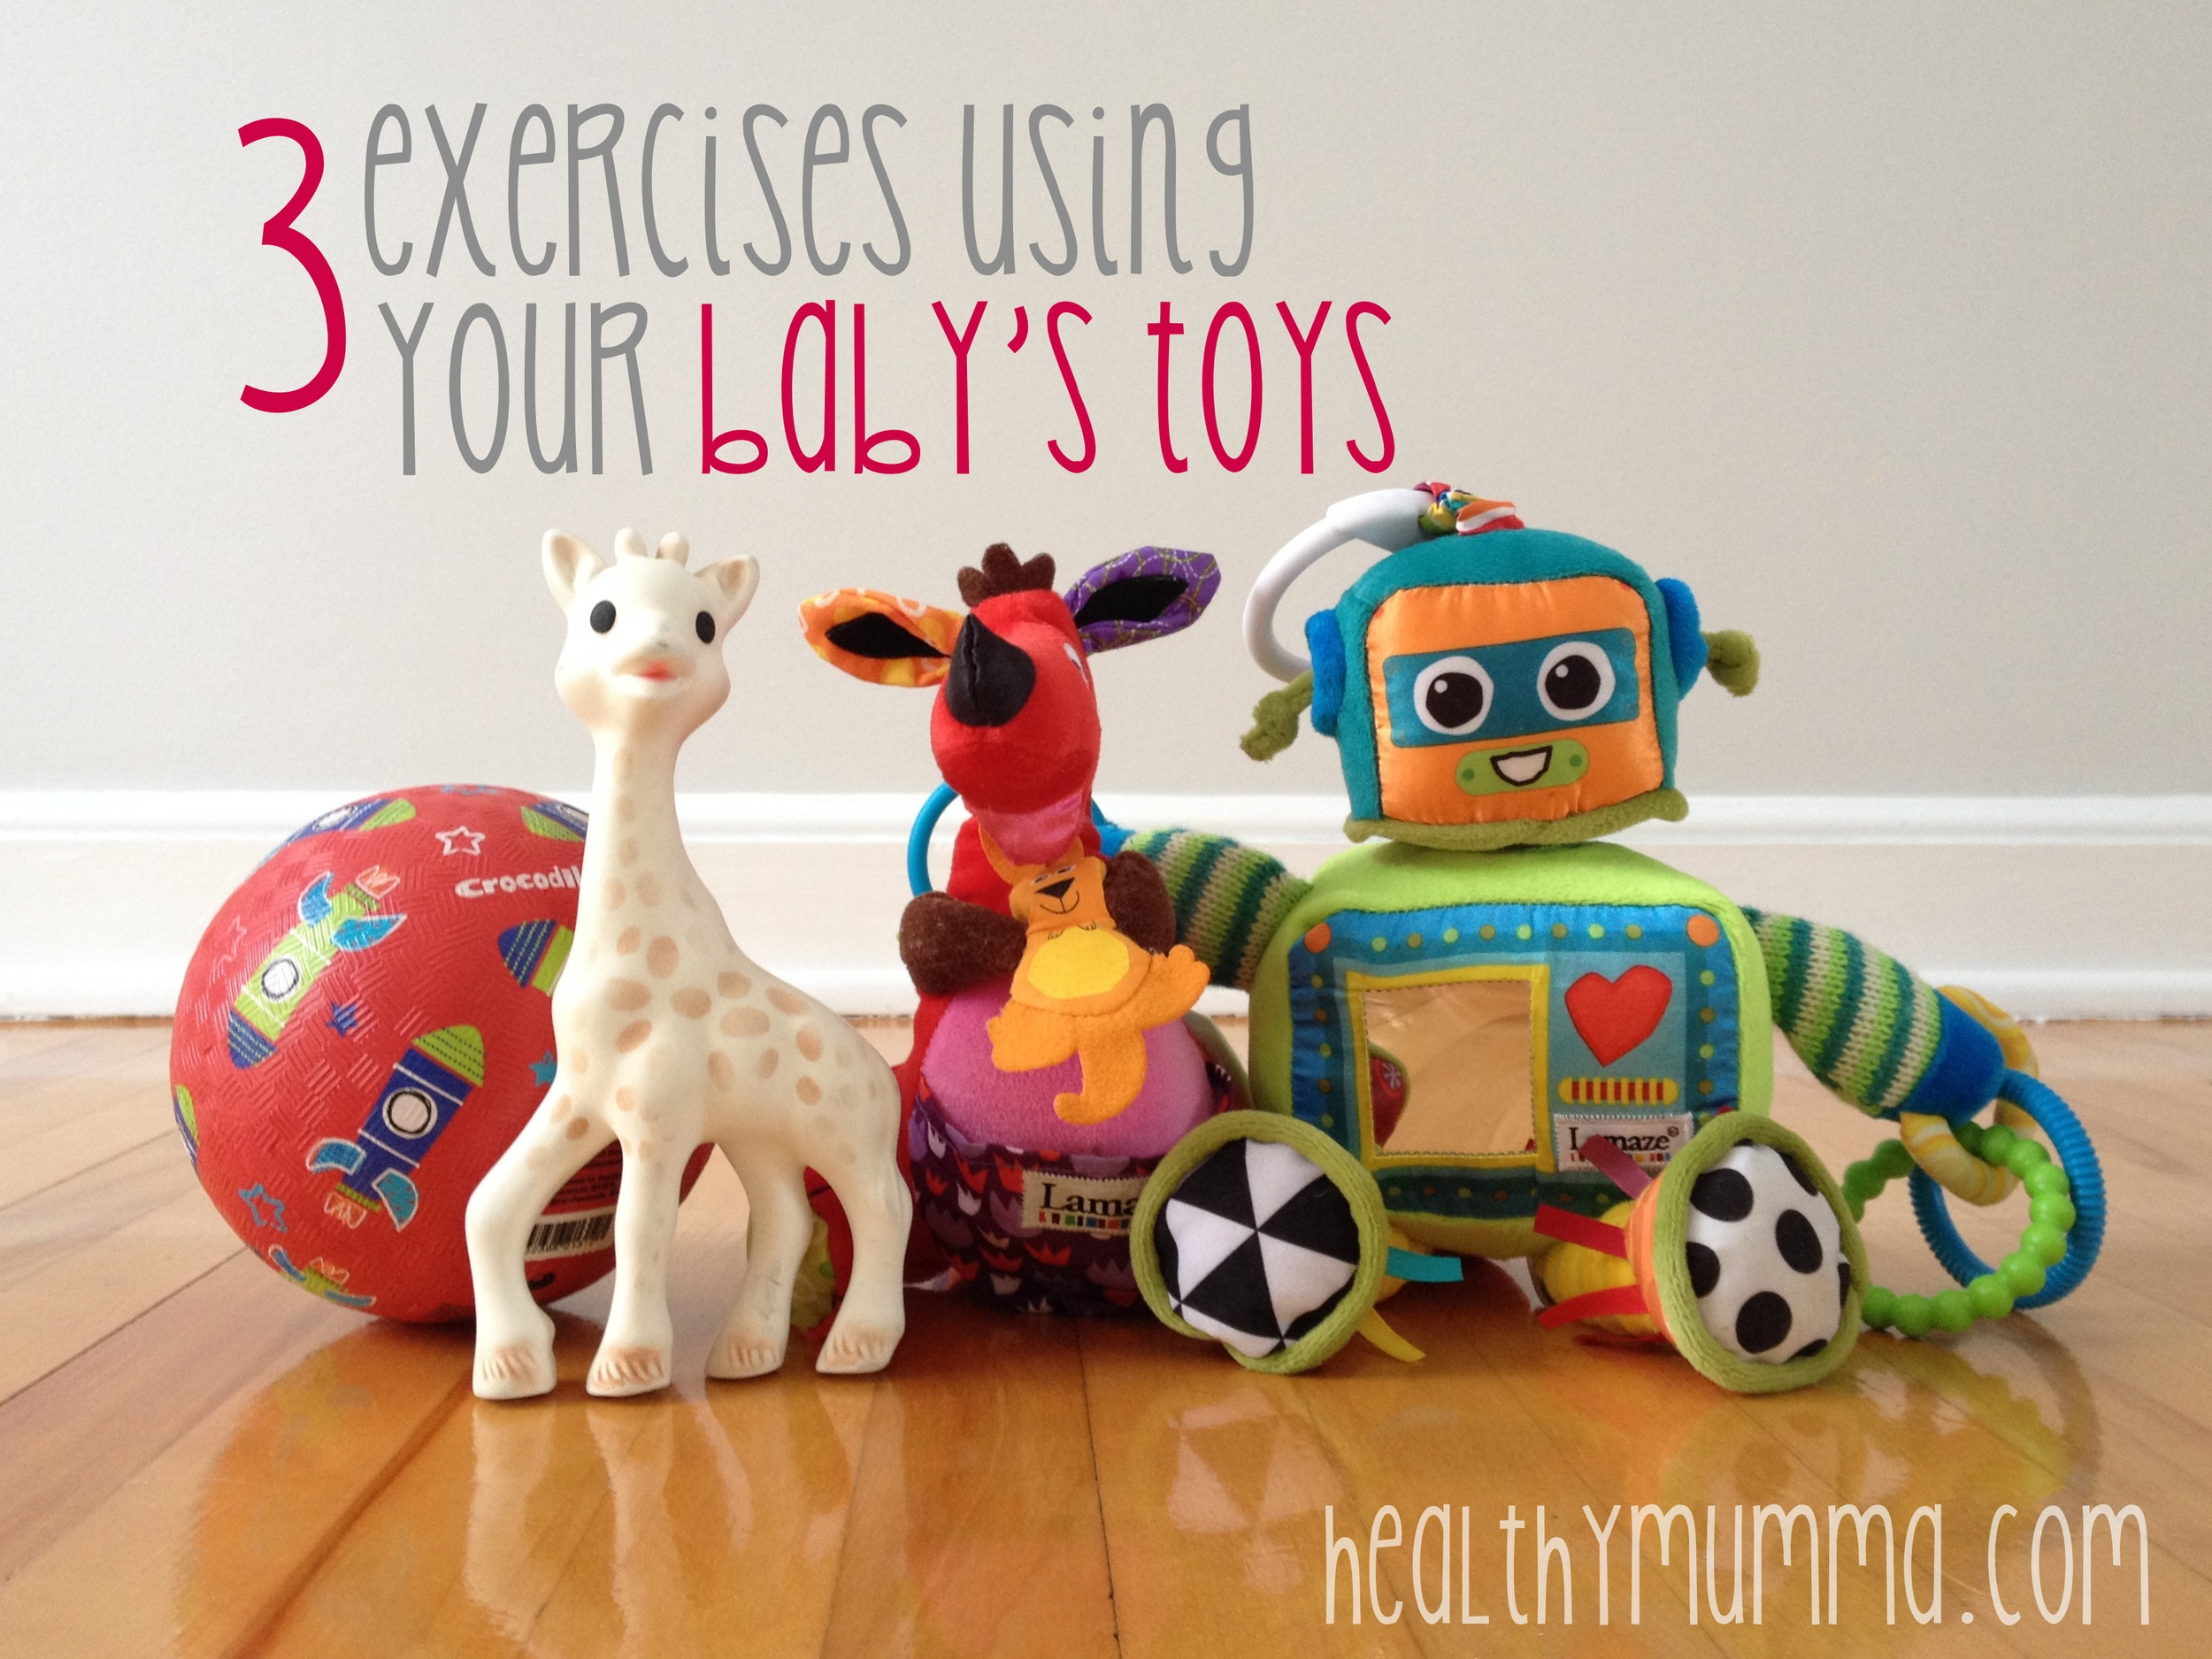 Three core exercises you can do using your baby's toys.